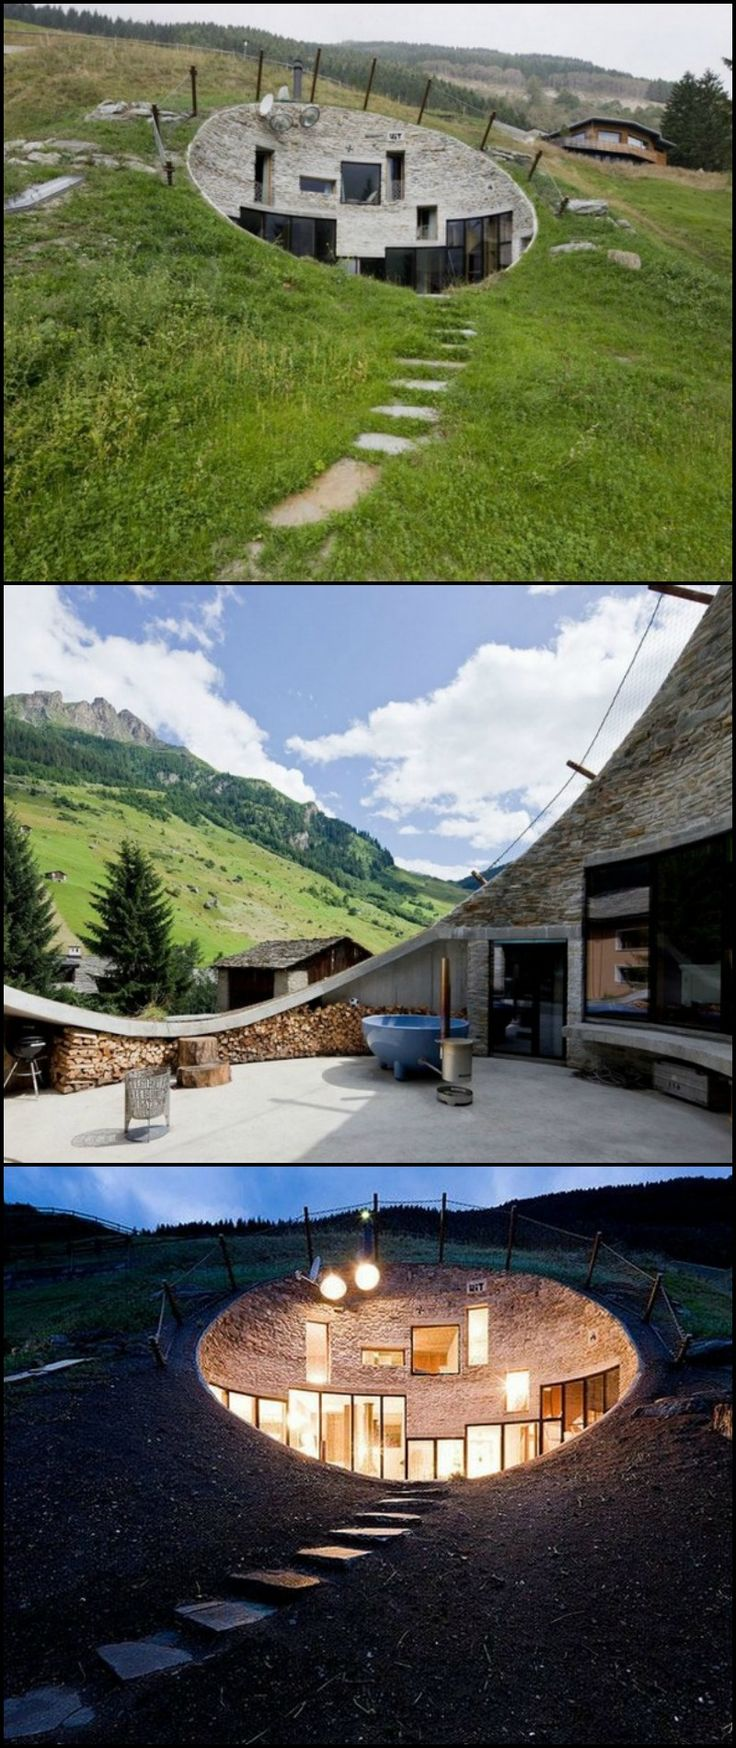 Most of us would think twice before even considering and underground home. Yet such homes offer some unique advantages, both ecologically and for the security conscious. http://architecture.ideas2live4.com/2015/08/08/underground-living-in-switzerland/ Underground living has some distinct advantages and this home makes the most of them. Could you live underground?